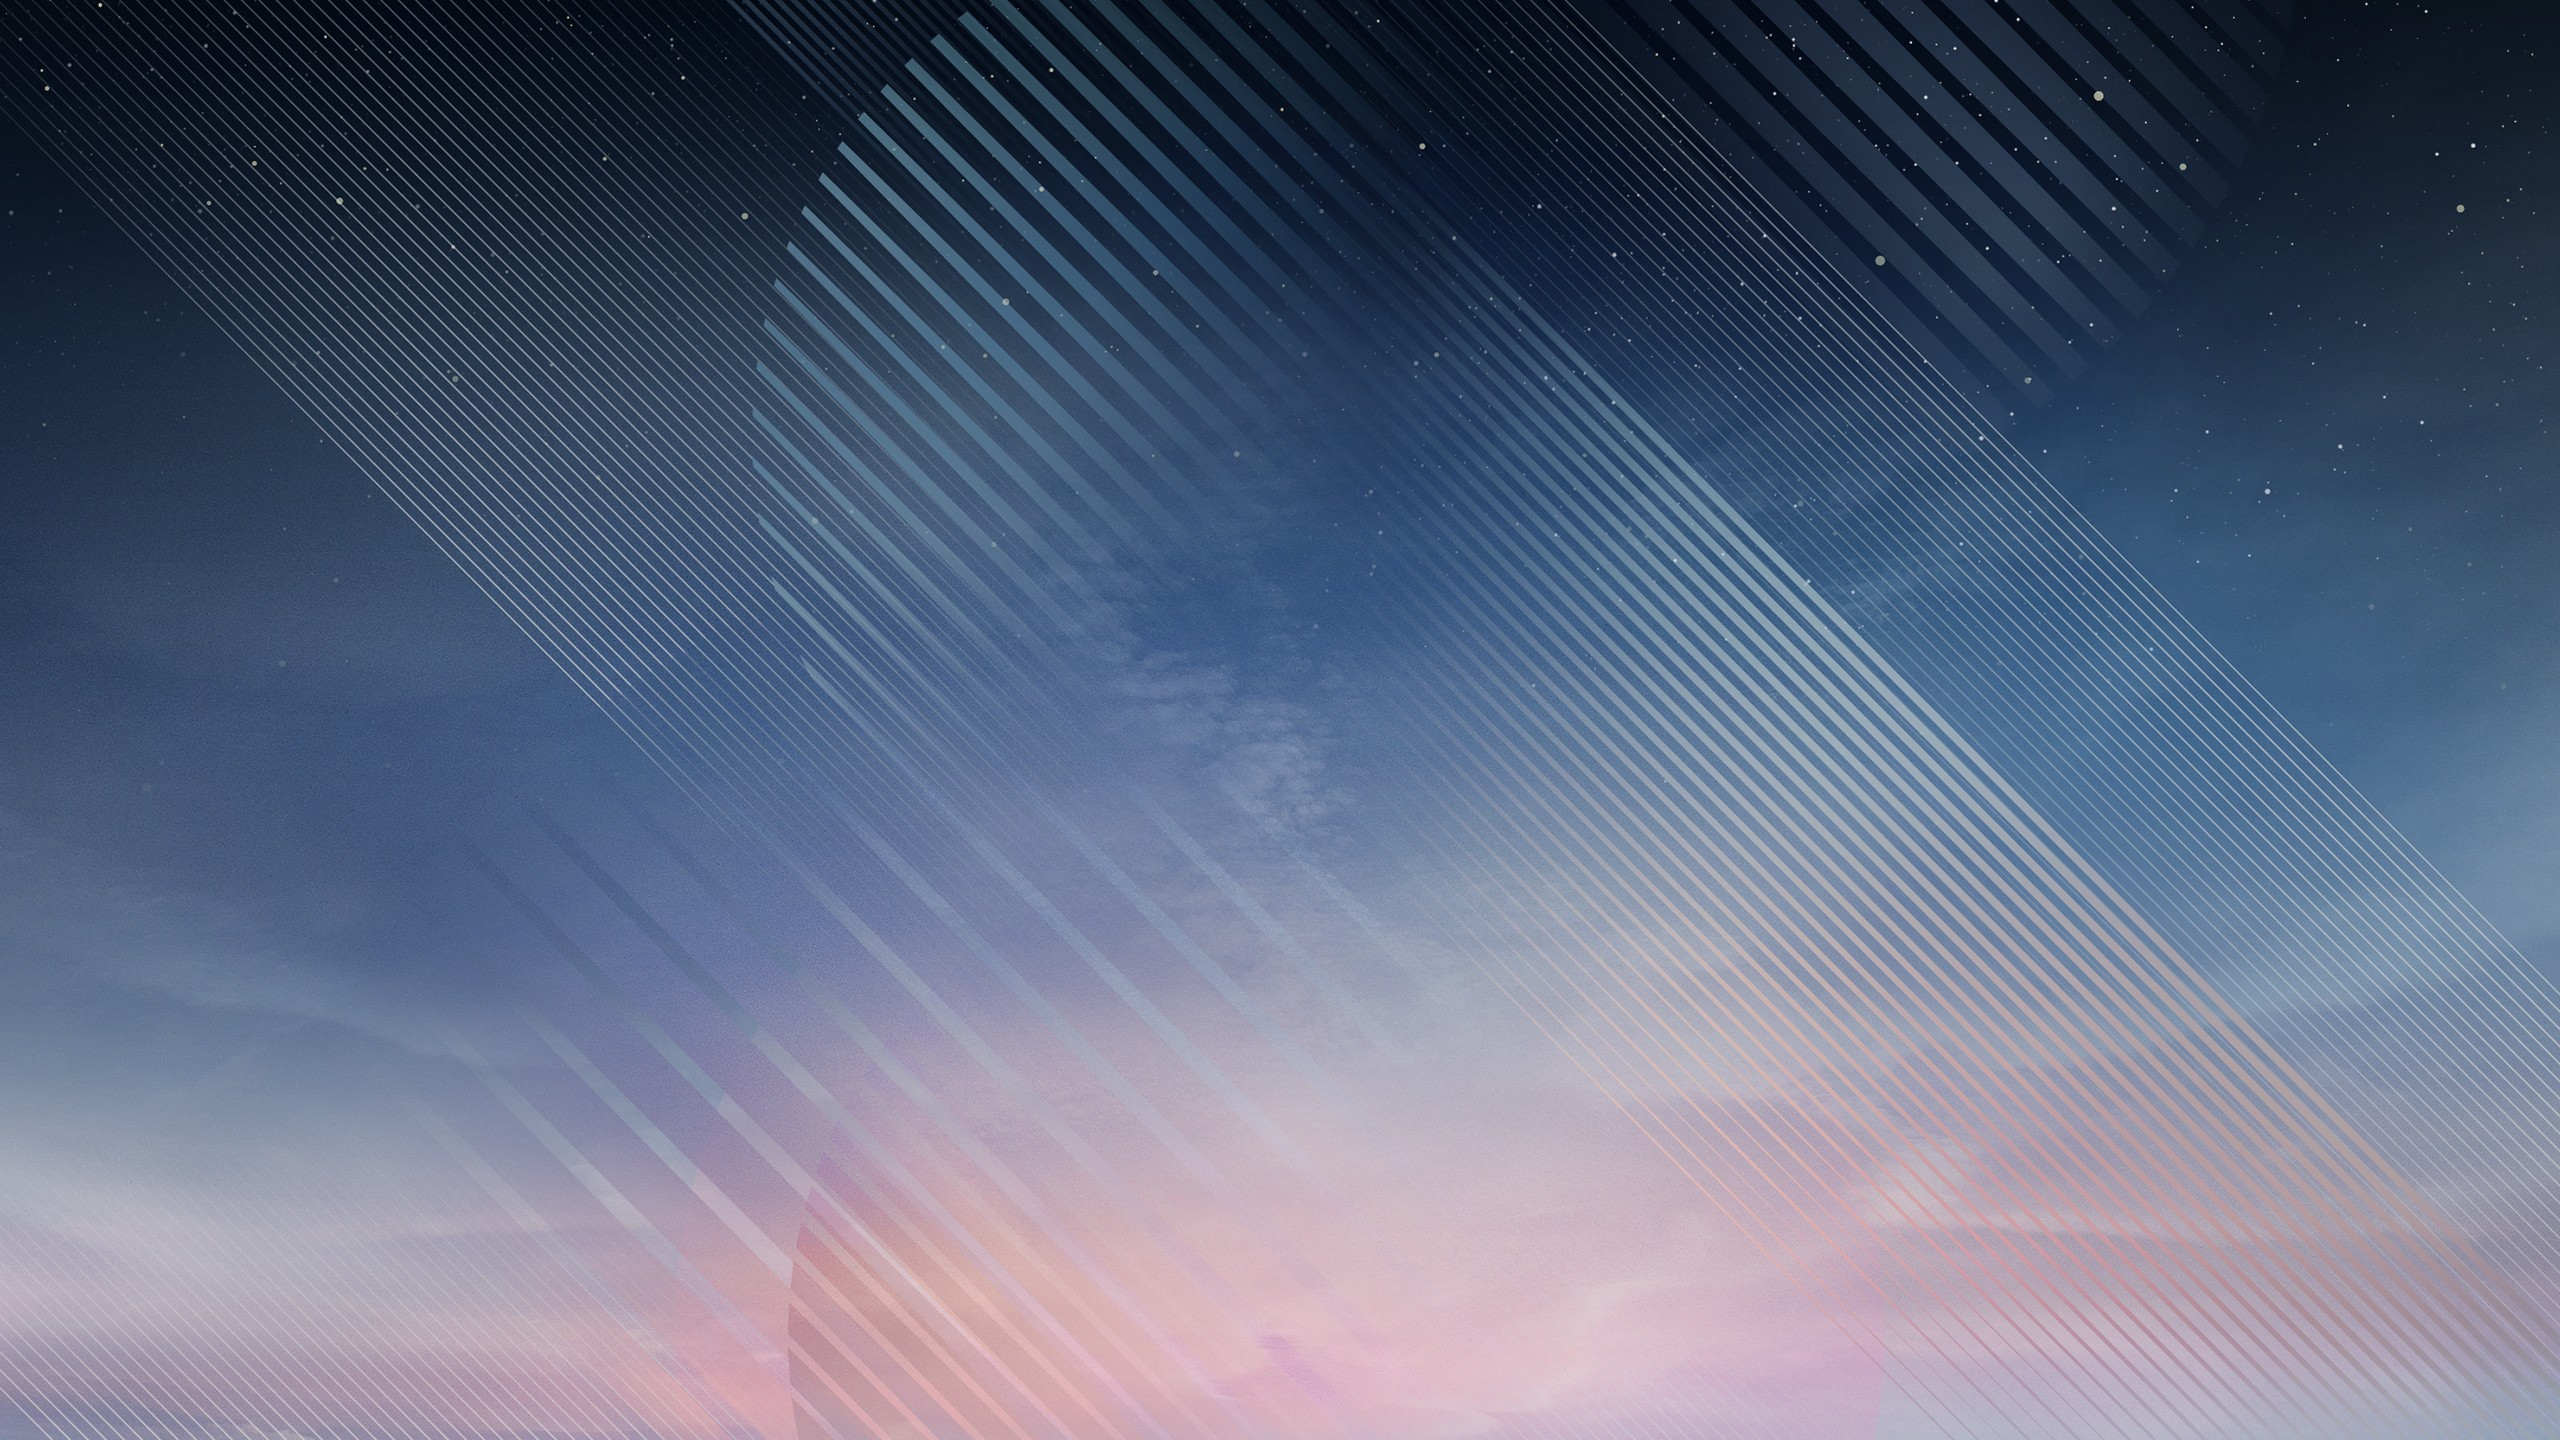 Wallpaper Samsung Galaxy Note 8 Android 8 0 Android Oreo Abstract